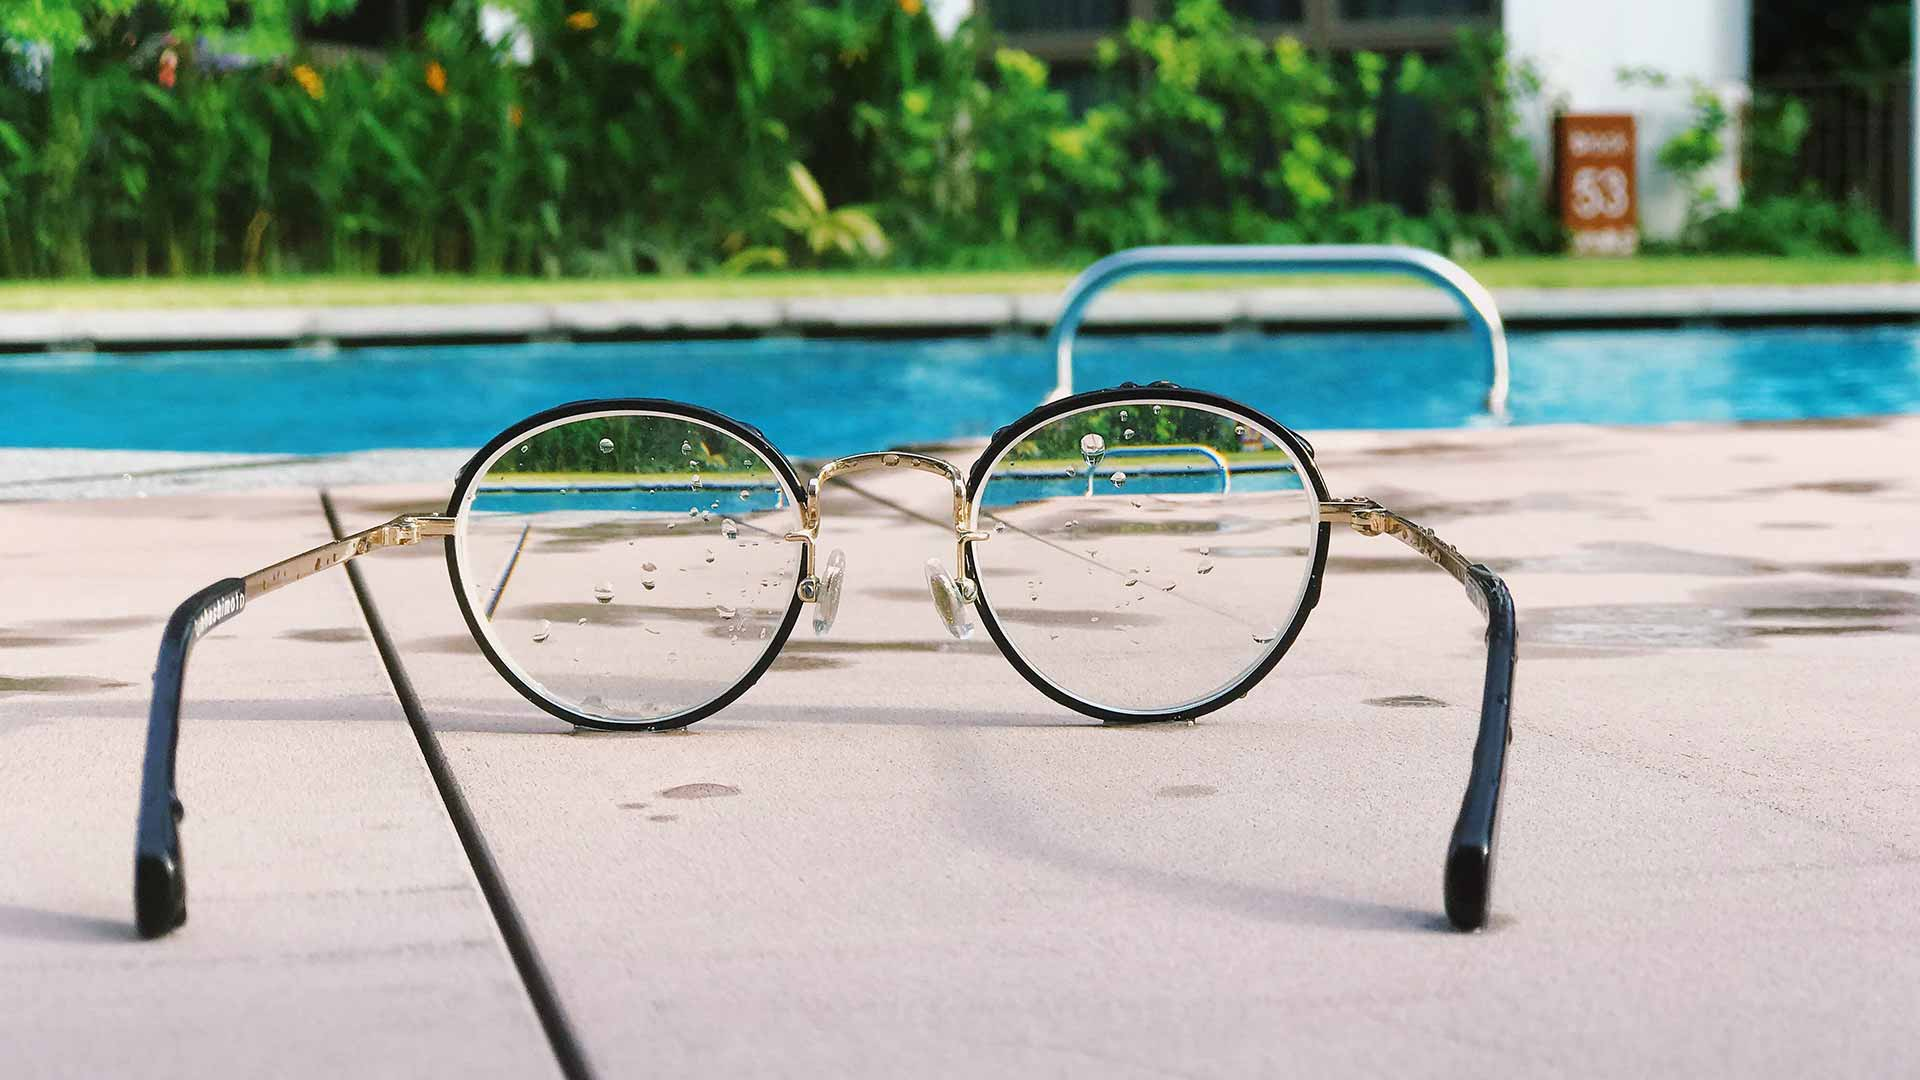 Glasses by a pool